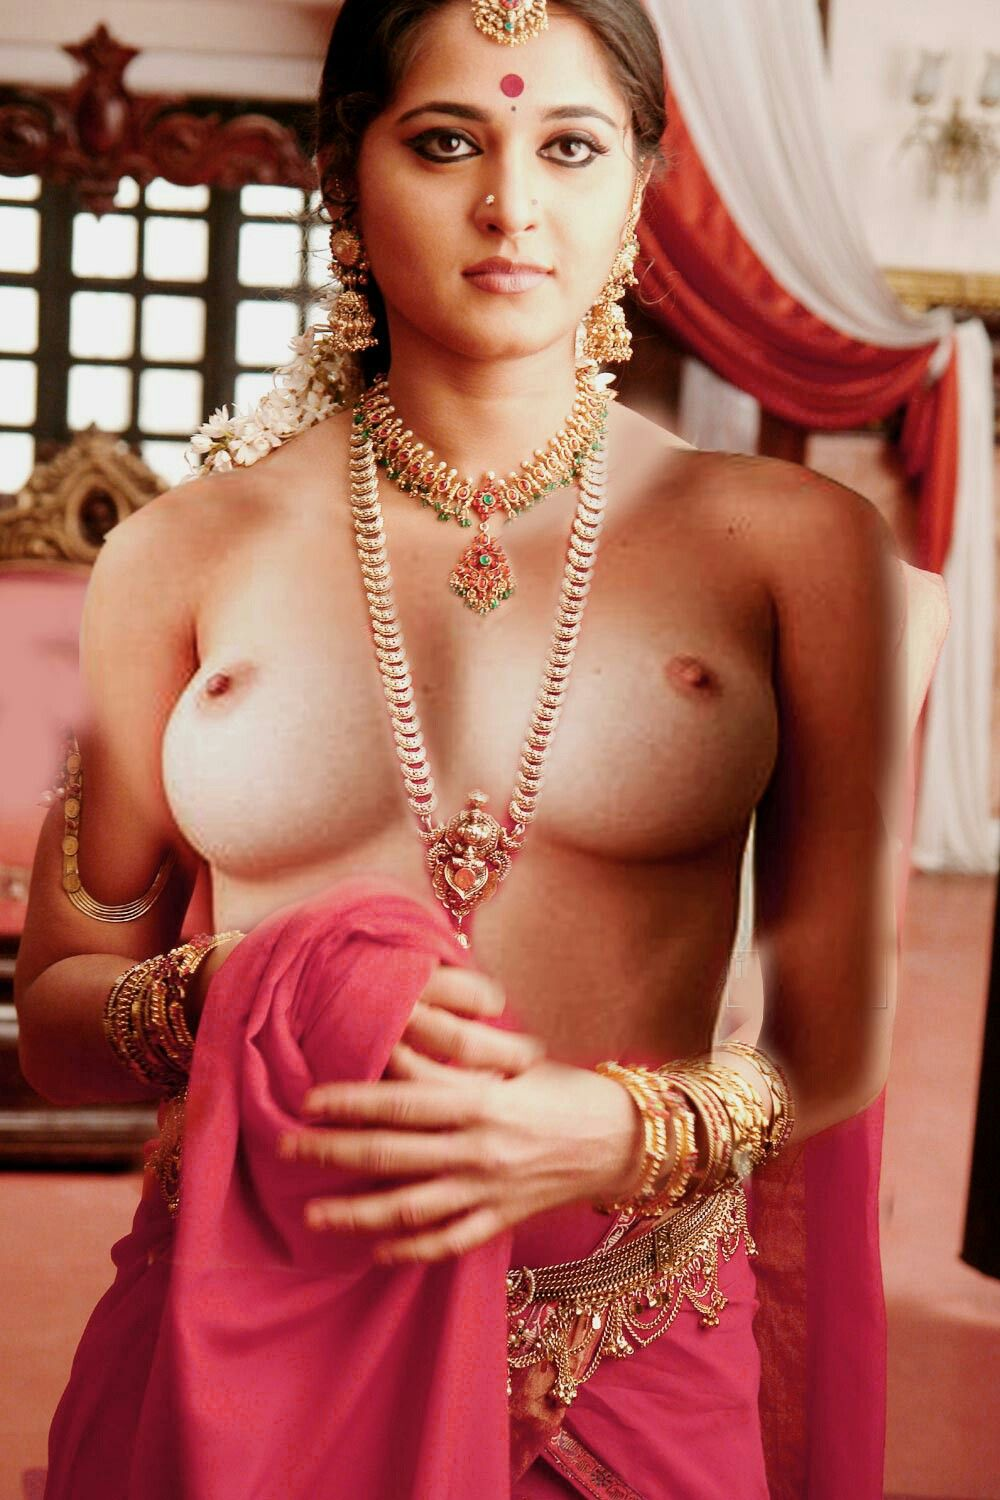 Indian Red Porn Ele pintheopolis on sexiteo | pinterest | bollywood and nude